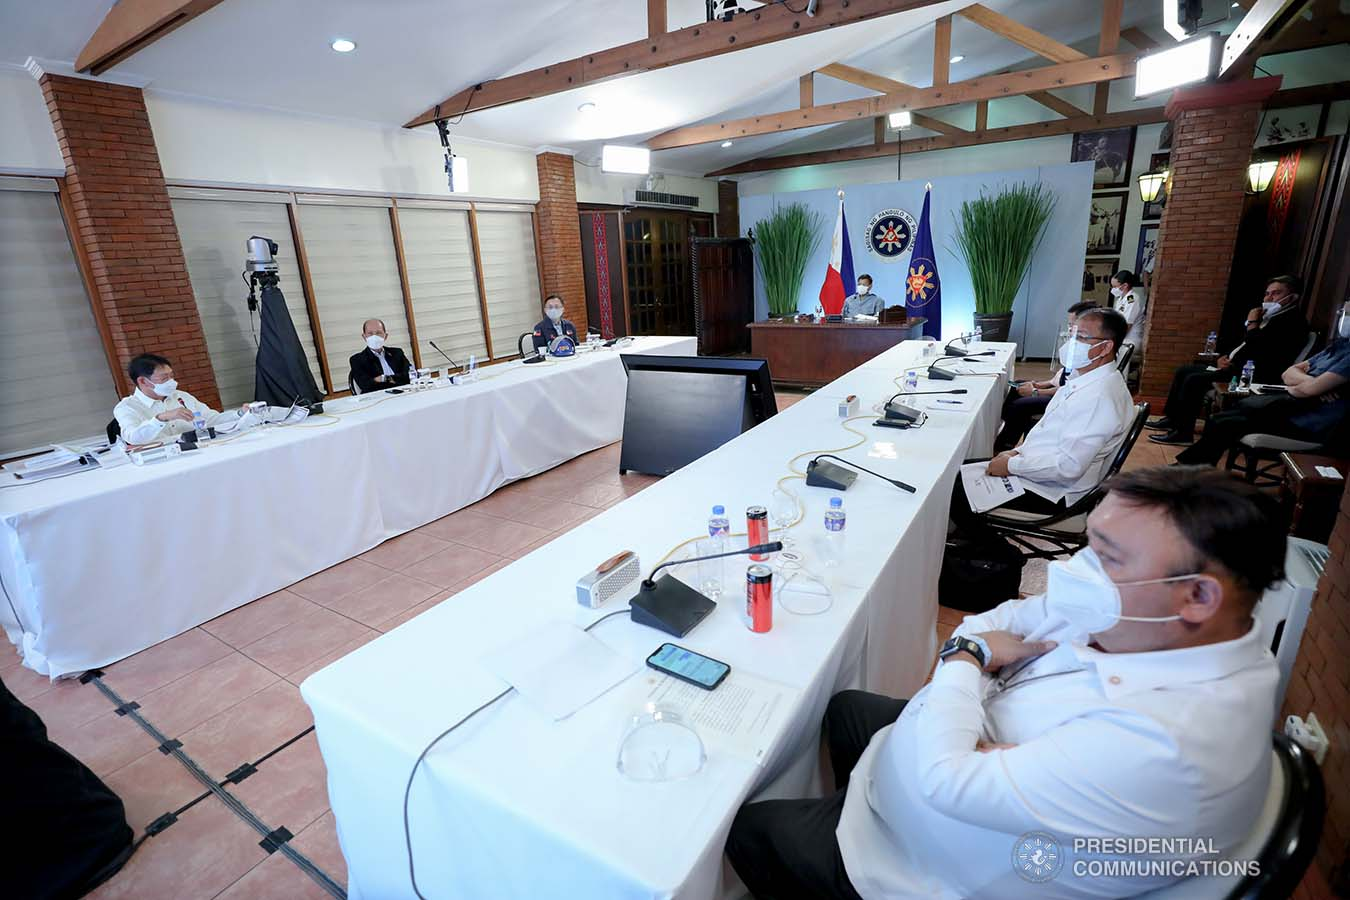 President Rodrigo Roa Duterte presides over a meeting with the Inter-Agency Task Force on the Emerging Infectious Diseases (IATF-EID) core members prior to his talk to the people at the Malacañang Golf (Malago) Clubhouse in Malacañang Park, Manila on May 13, 2021. ROBINSON NIÑAL/ PRESIDENTIAL PHOTO